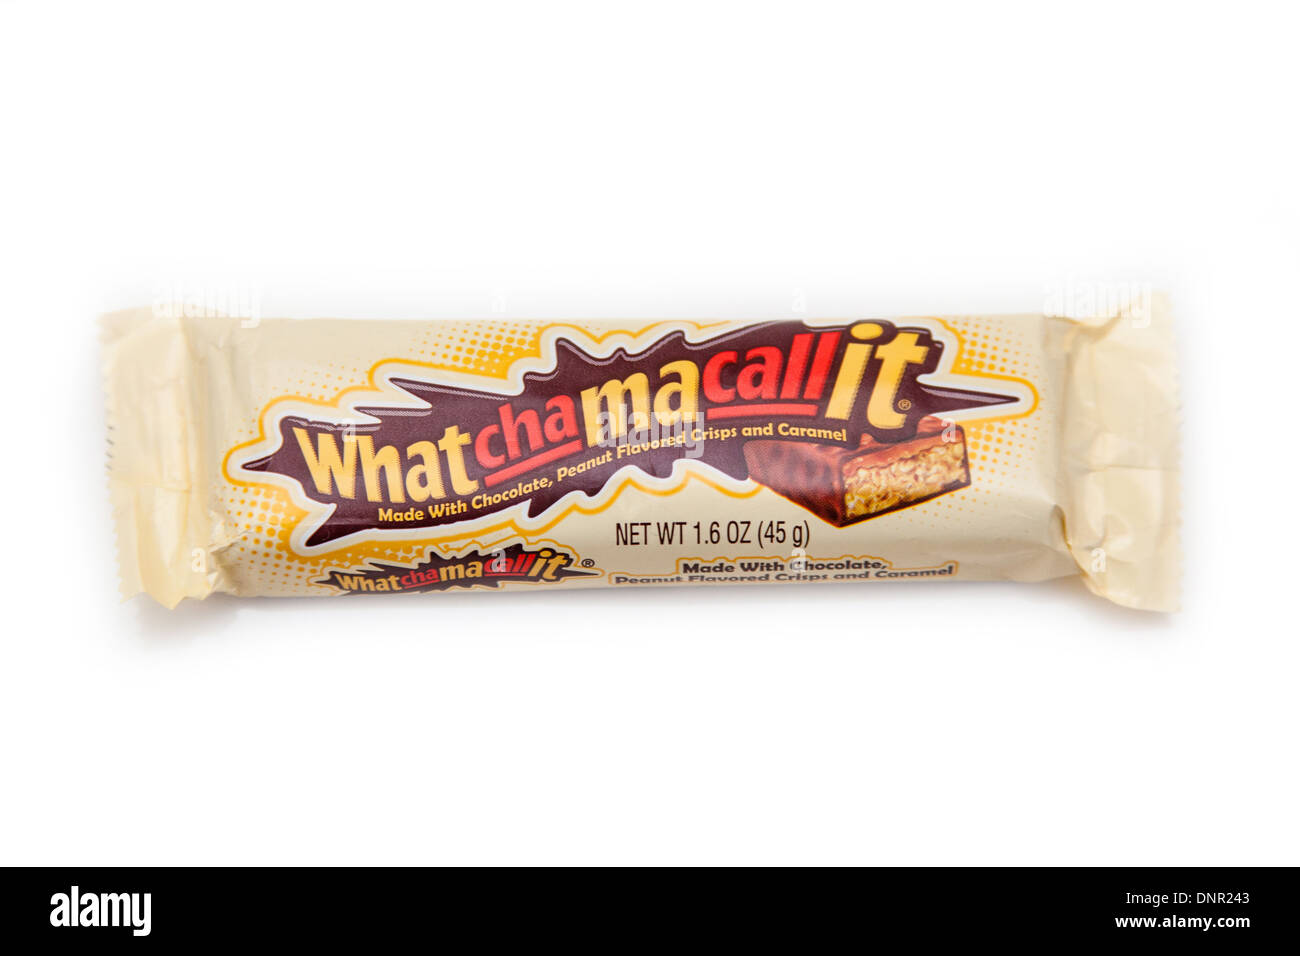 Whatchamacallit candy bar isolated on a white studio background. - Stock Image